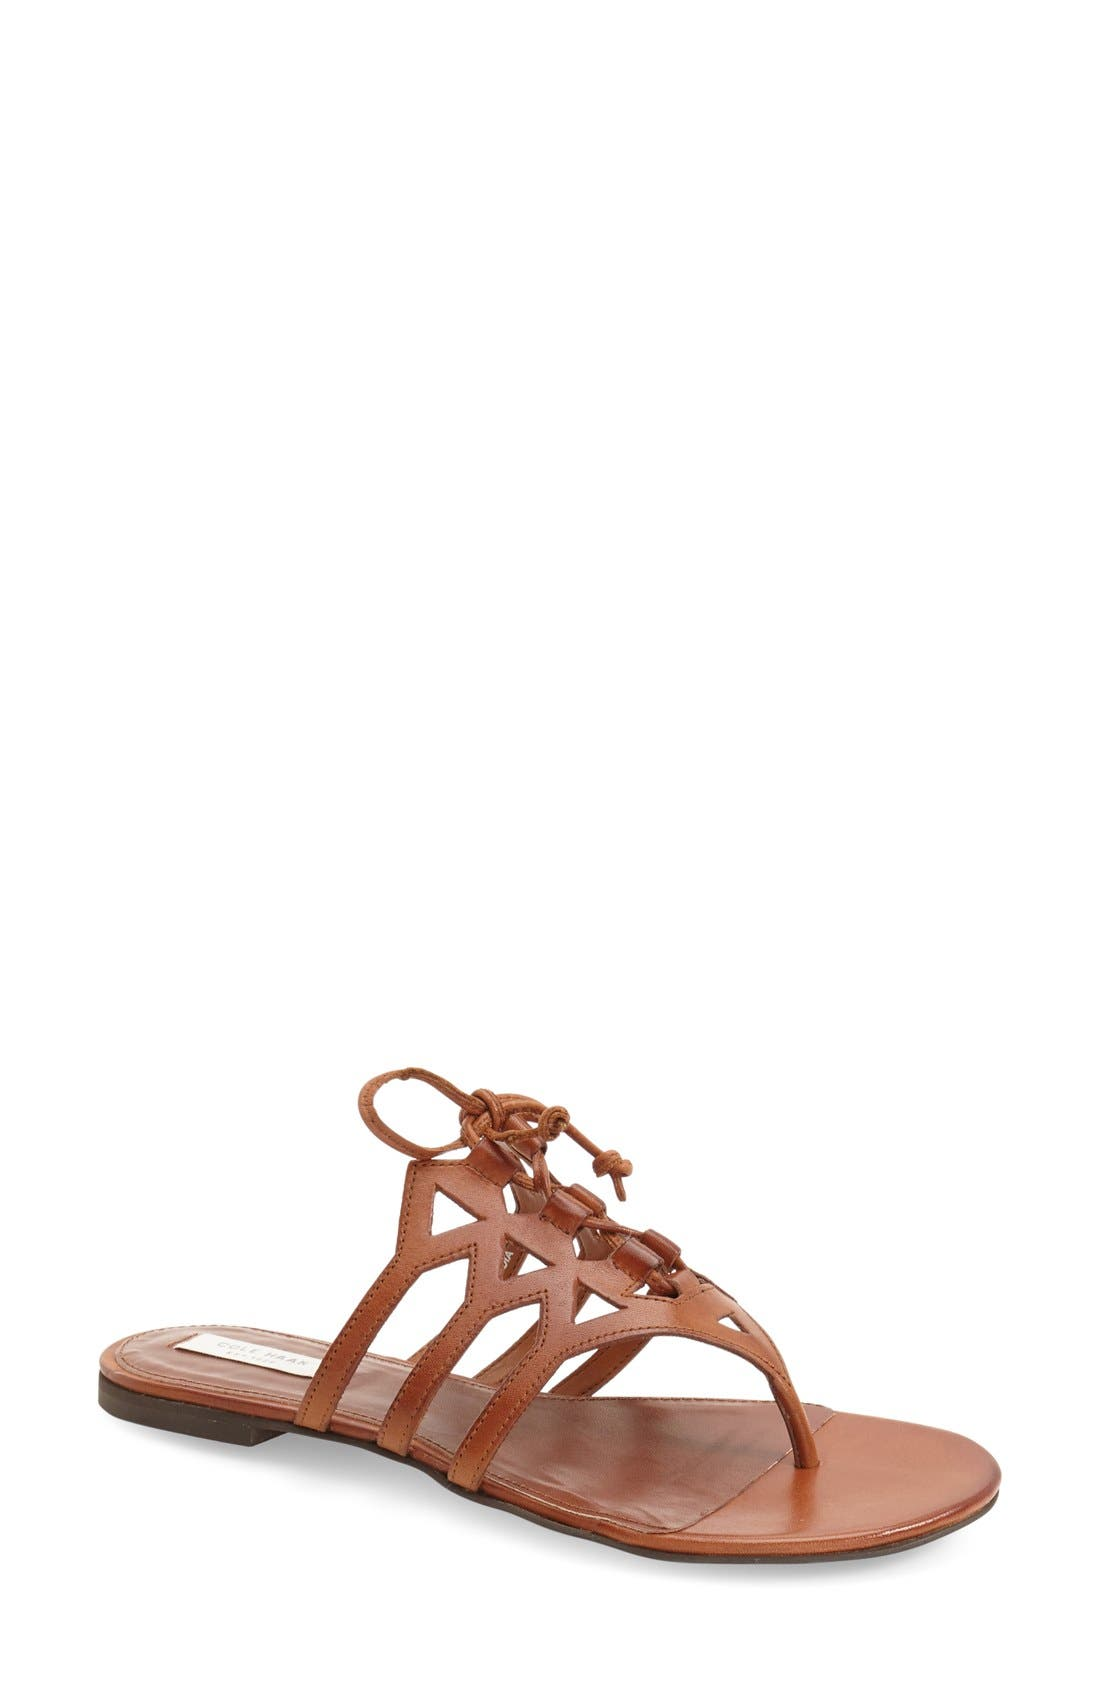 Alternate Image 1 Selected - Cole Haan 'Claudia' Flat Lace-Up Sandal (Women)